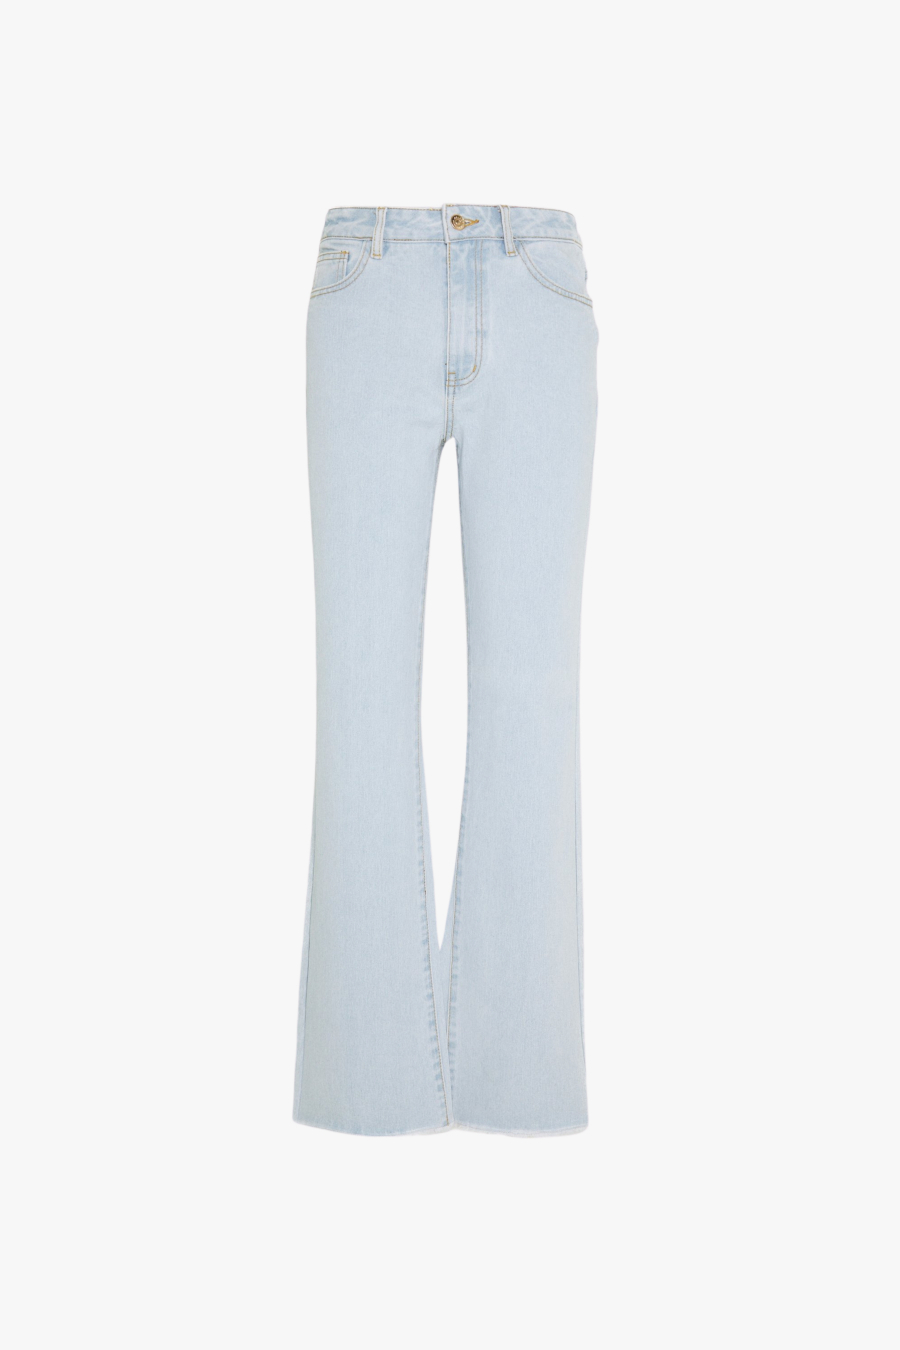 OBJSINYA STRIGHT WIDE JEANS